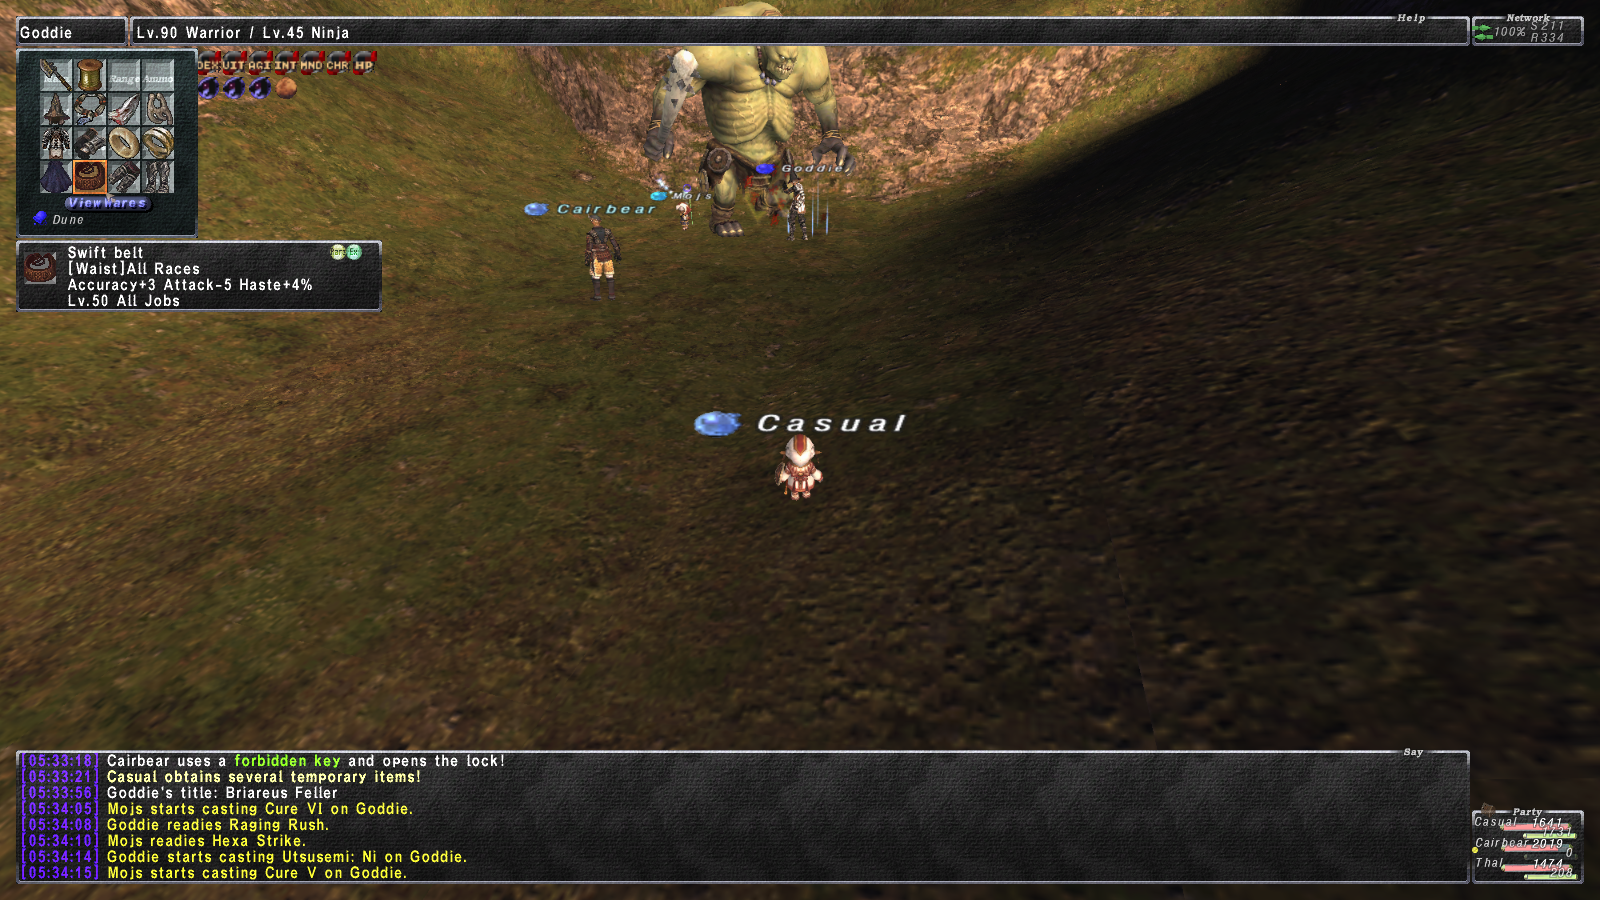 cairthenn ffxi gear lv78 wear stand cares leech dolls xxii thread literally player make pics renzys gimpleeches long taking shots screen point fast killing presuming lv90s contribute mobs gonna vtit listed mooch damage contribution tier this play gimpconfusedwtf contributions